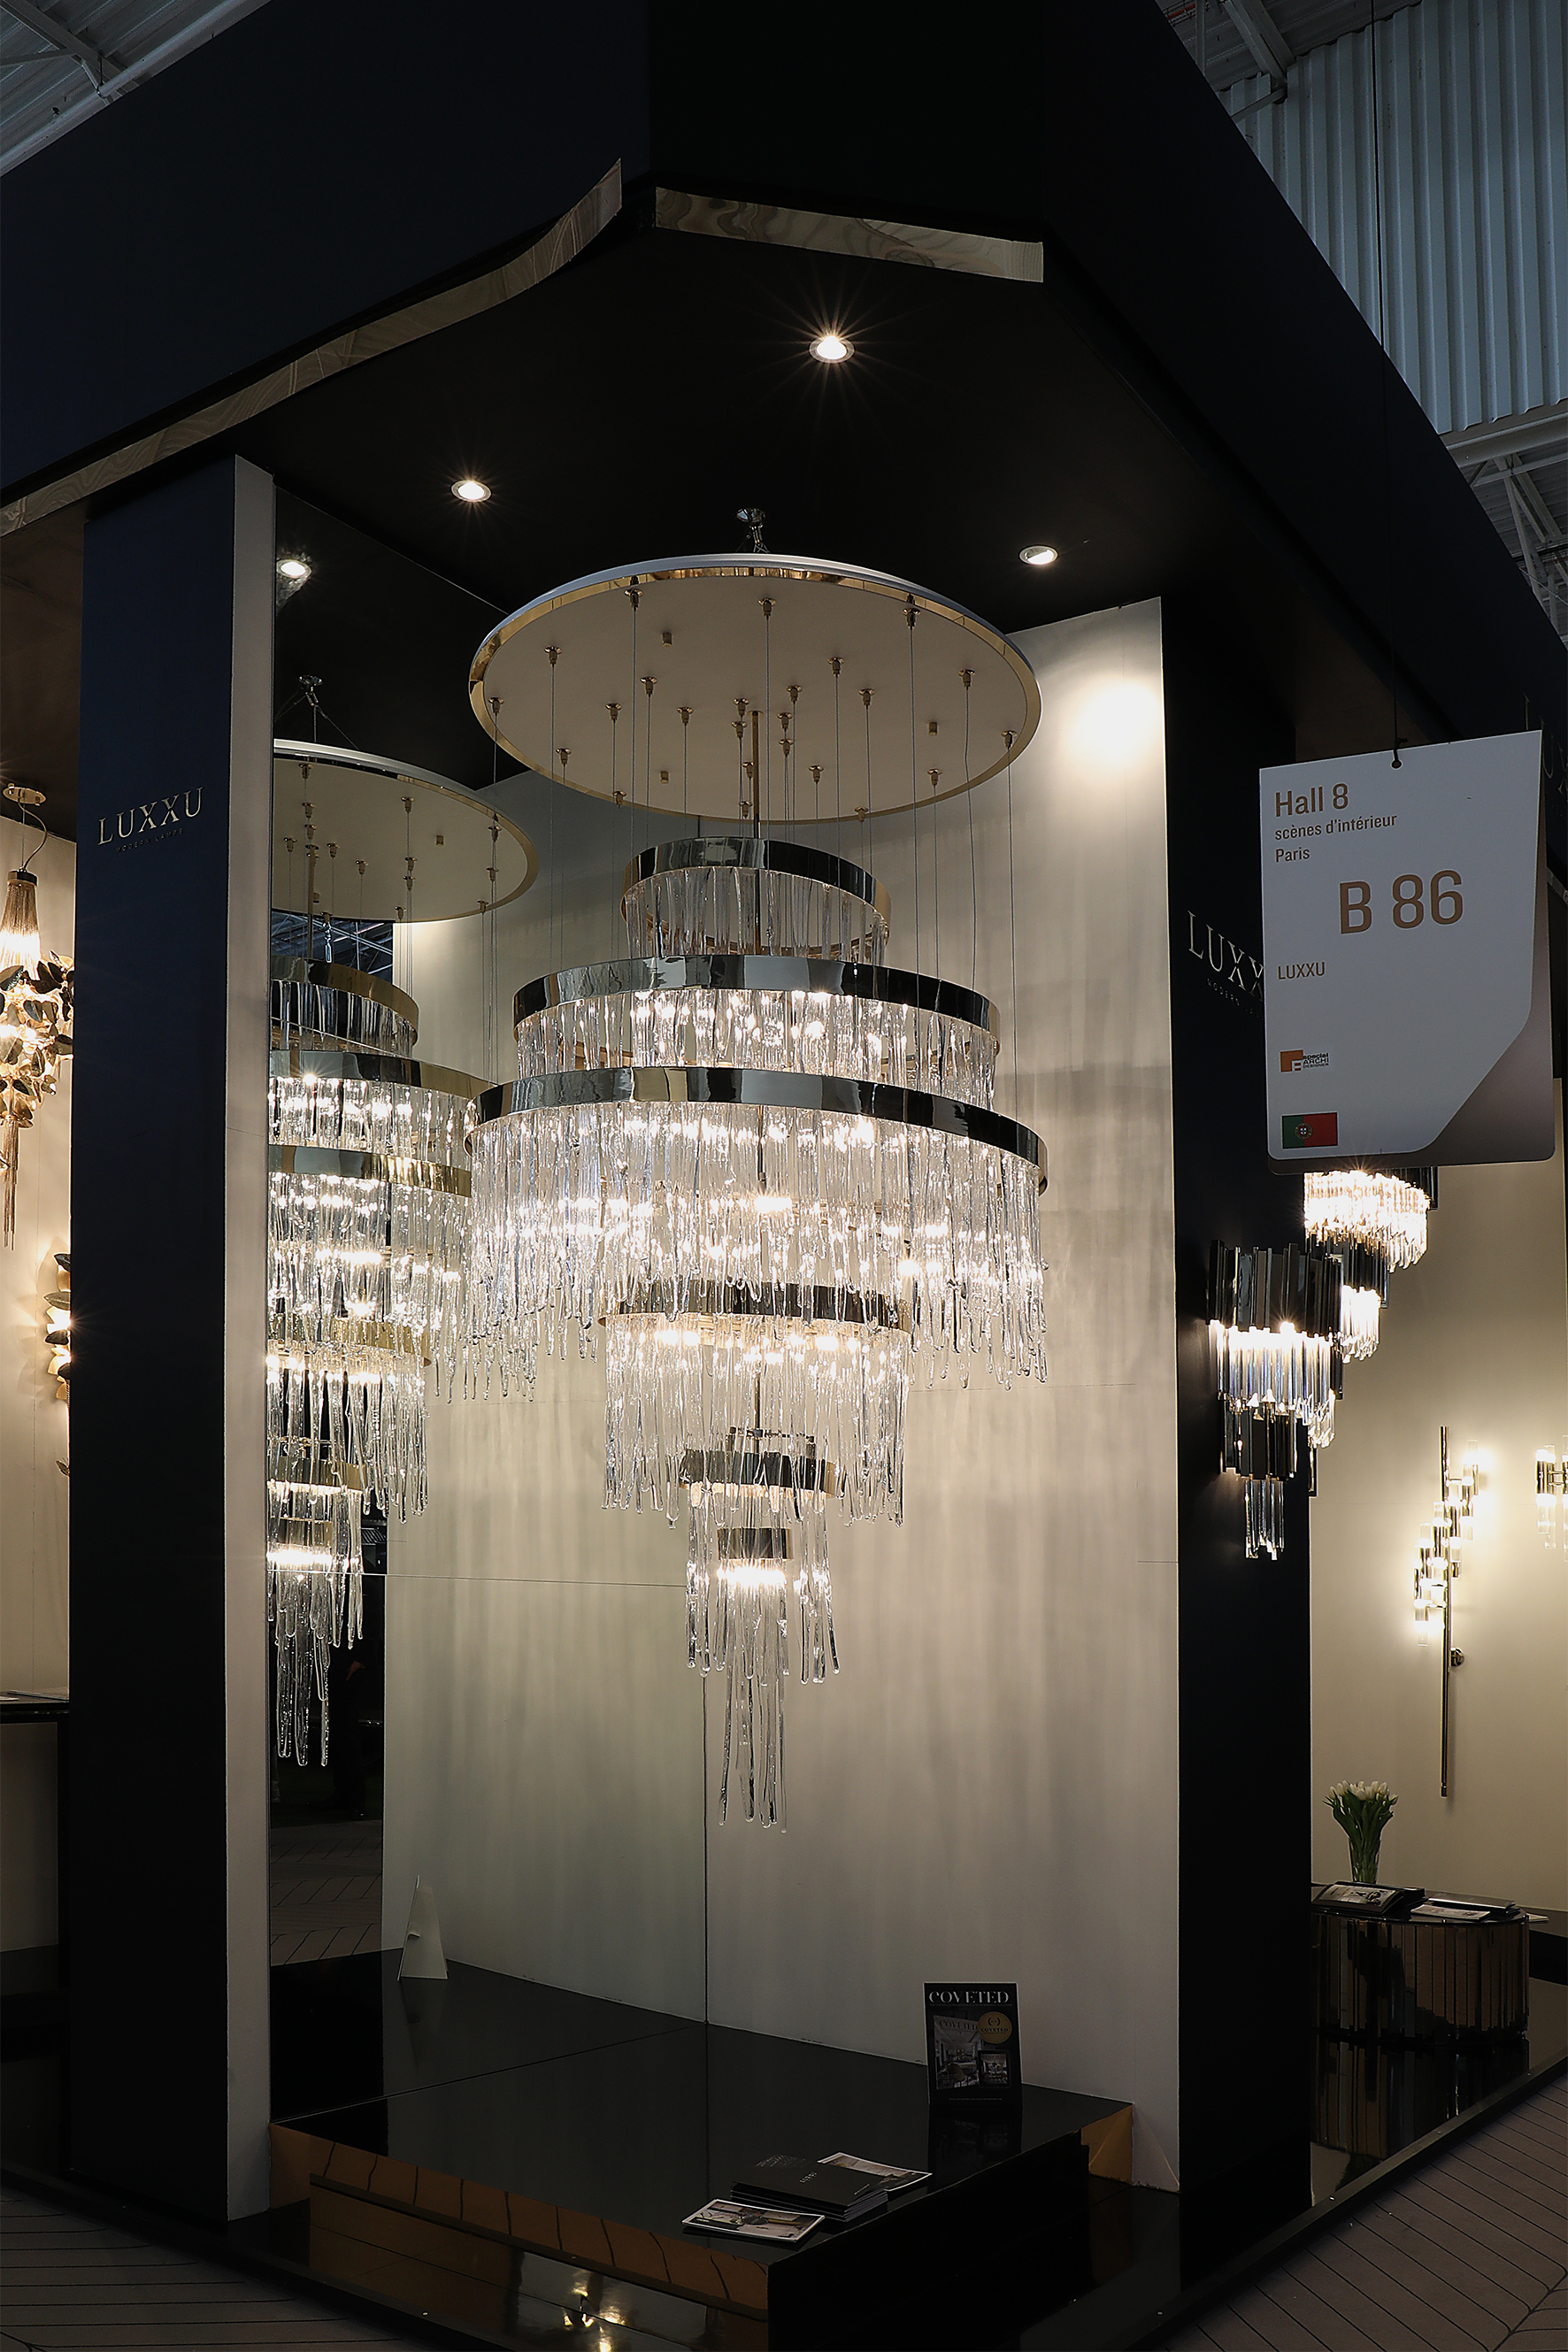 Extravagant Lighting Collection by Luxxu at Maison et Objet Paris 2017 maison et objet paris 2017 Extravagant Lighting Collection by Luxxu at Maison et Objet Paris 2017 babel chandelier maison objet paris luxxu